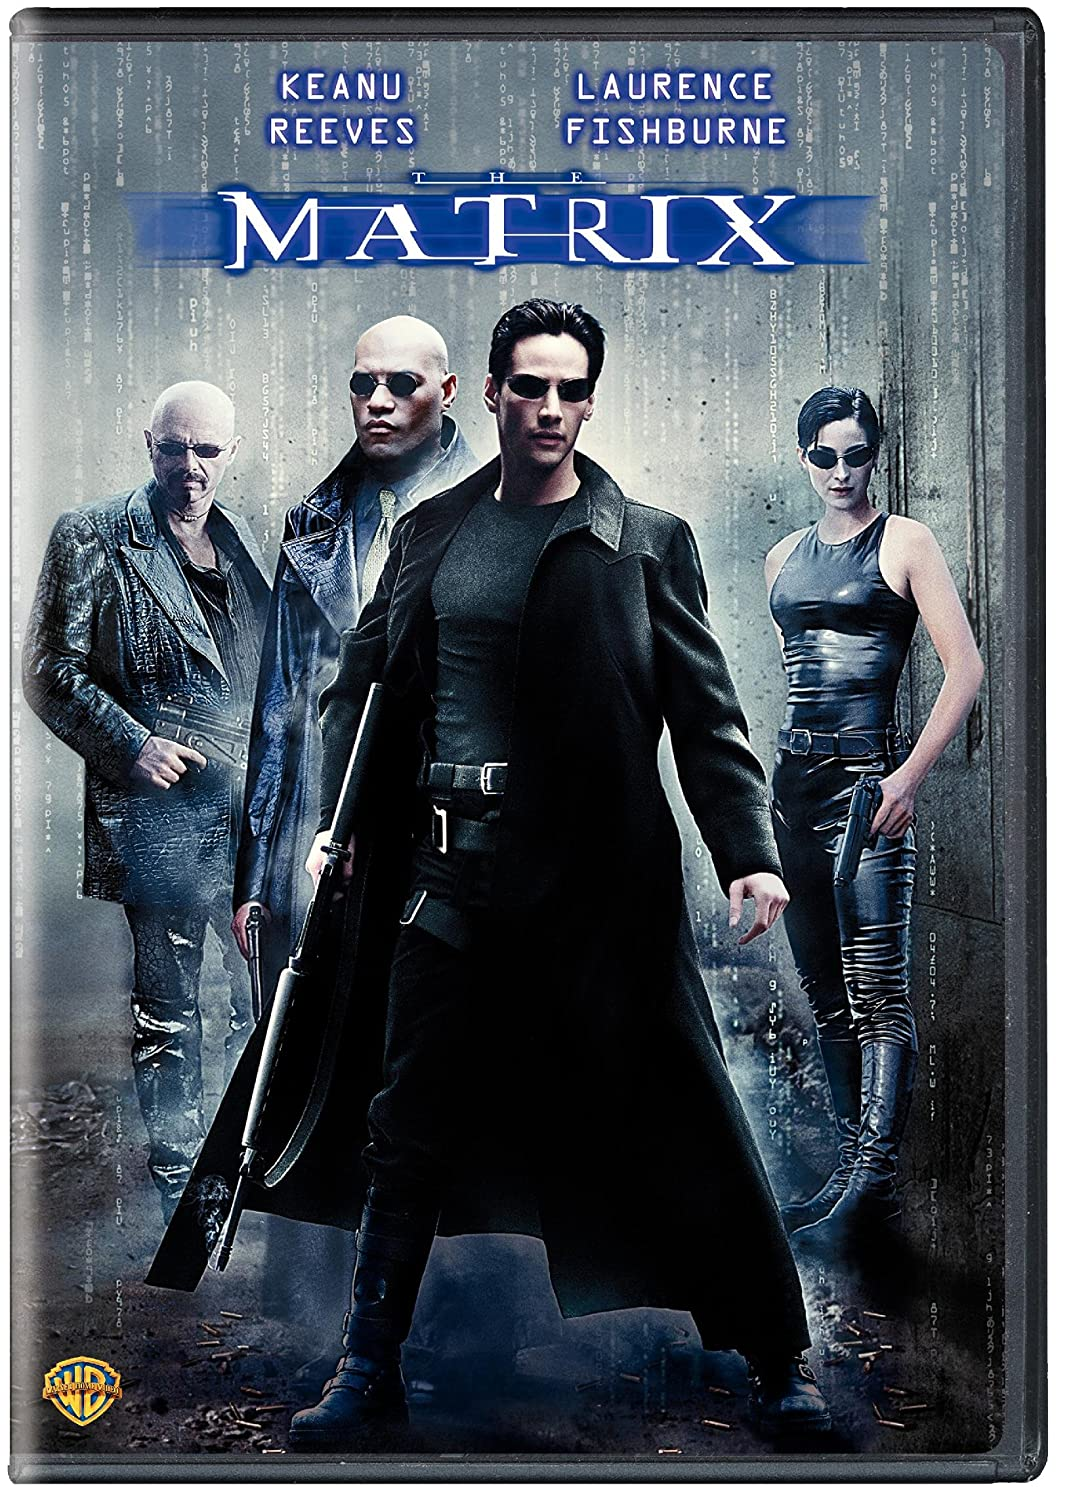 Amazon.com: The Matrix [DVD] (1999): Keanu Reeves, Carrie-anne ...